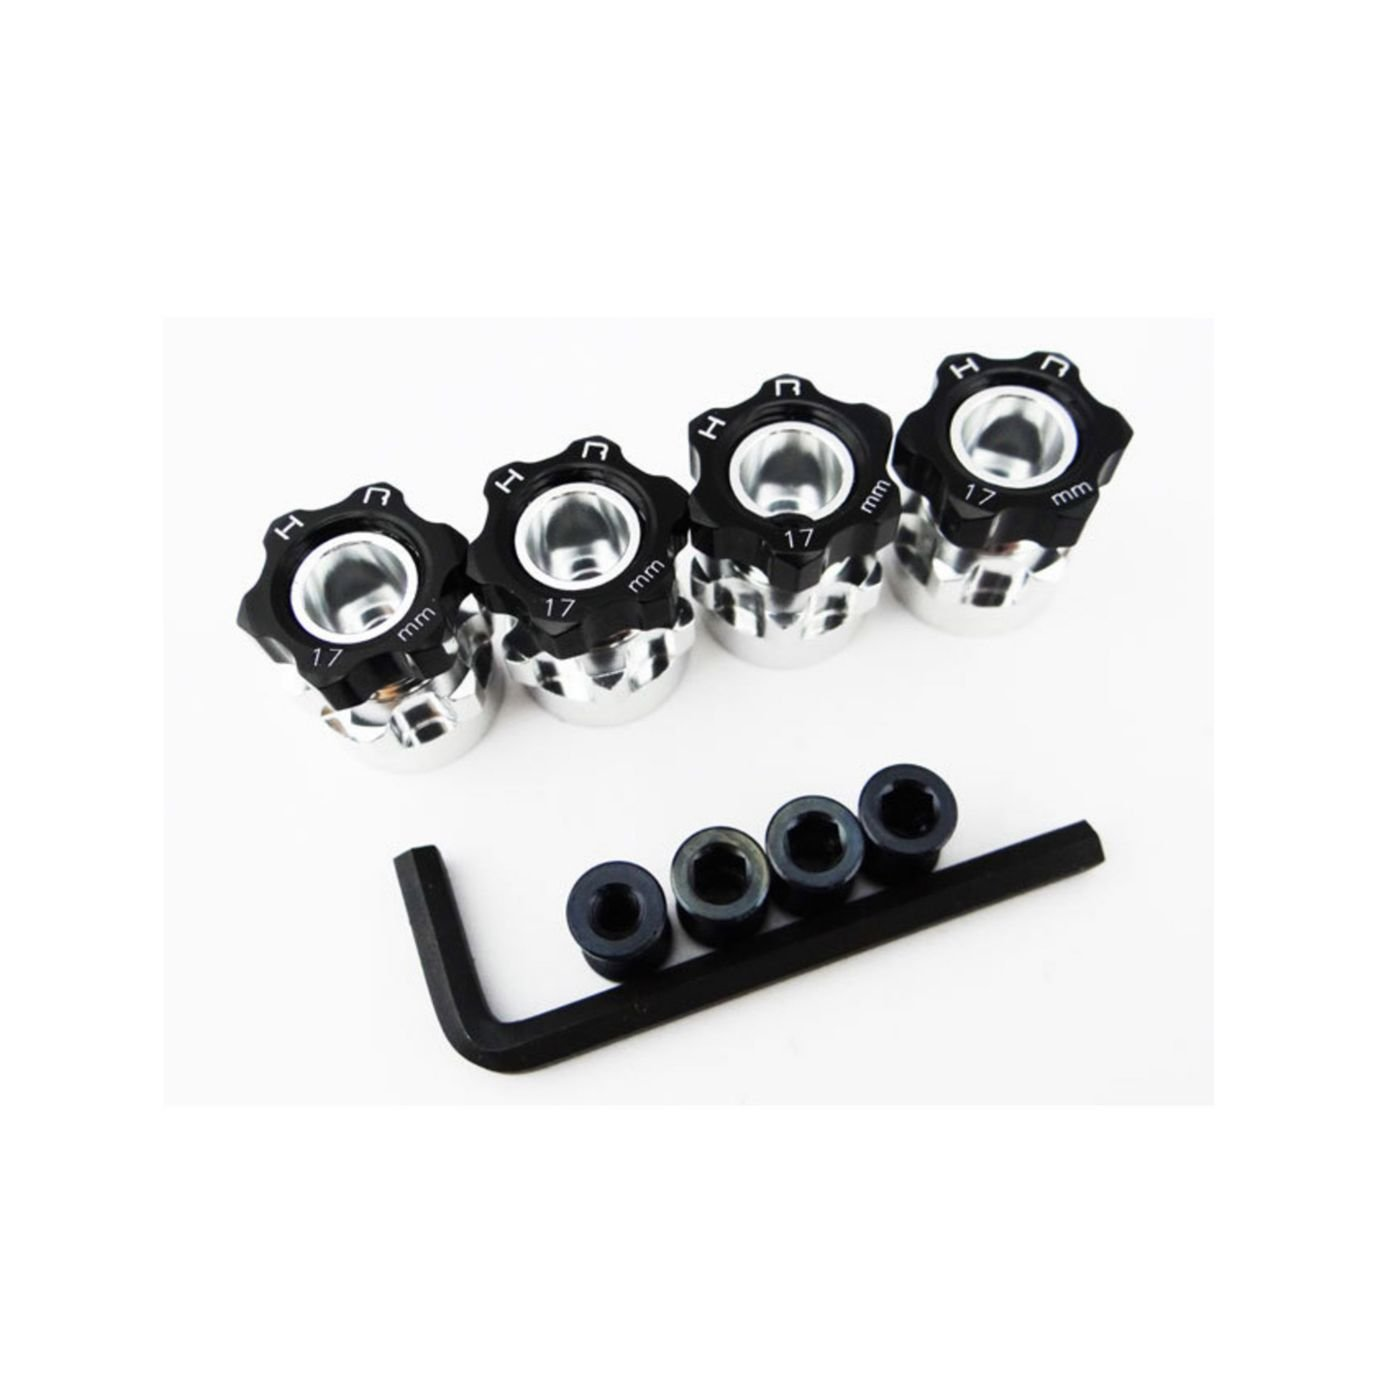 Hot Racing WH17HS01 Hex Hub Adapters 12mm to 17mm w/ w/ w/ 6mm Offset by Hot Racing 59b9e8